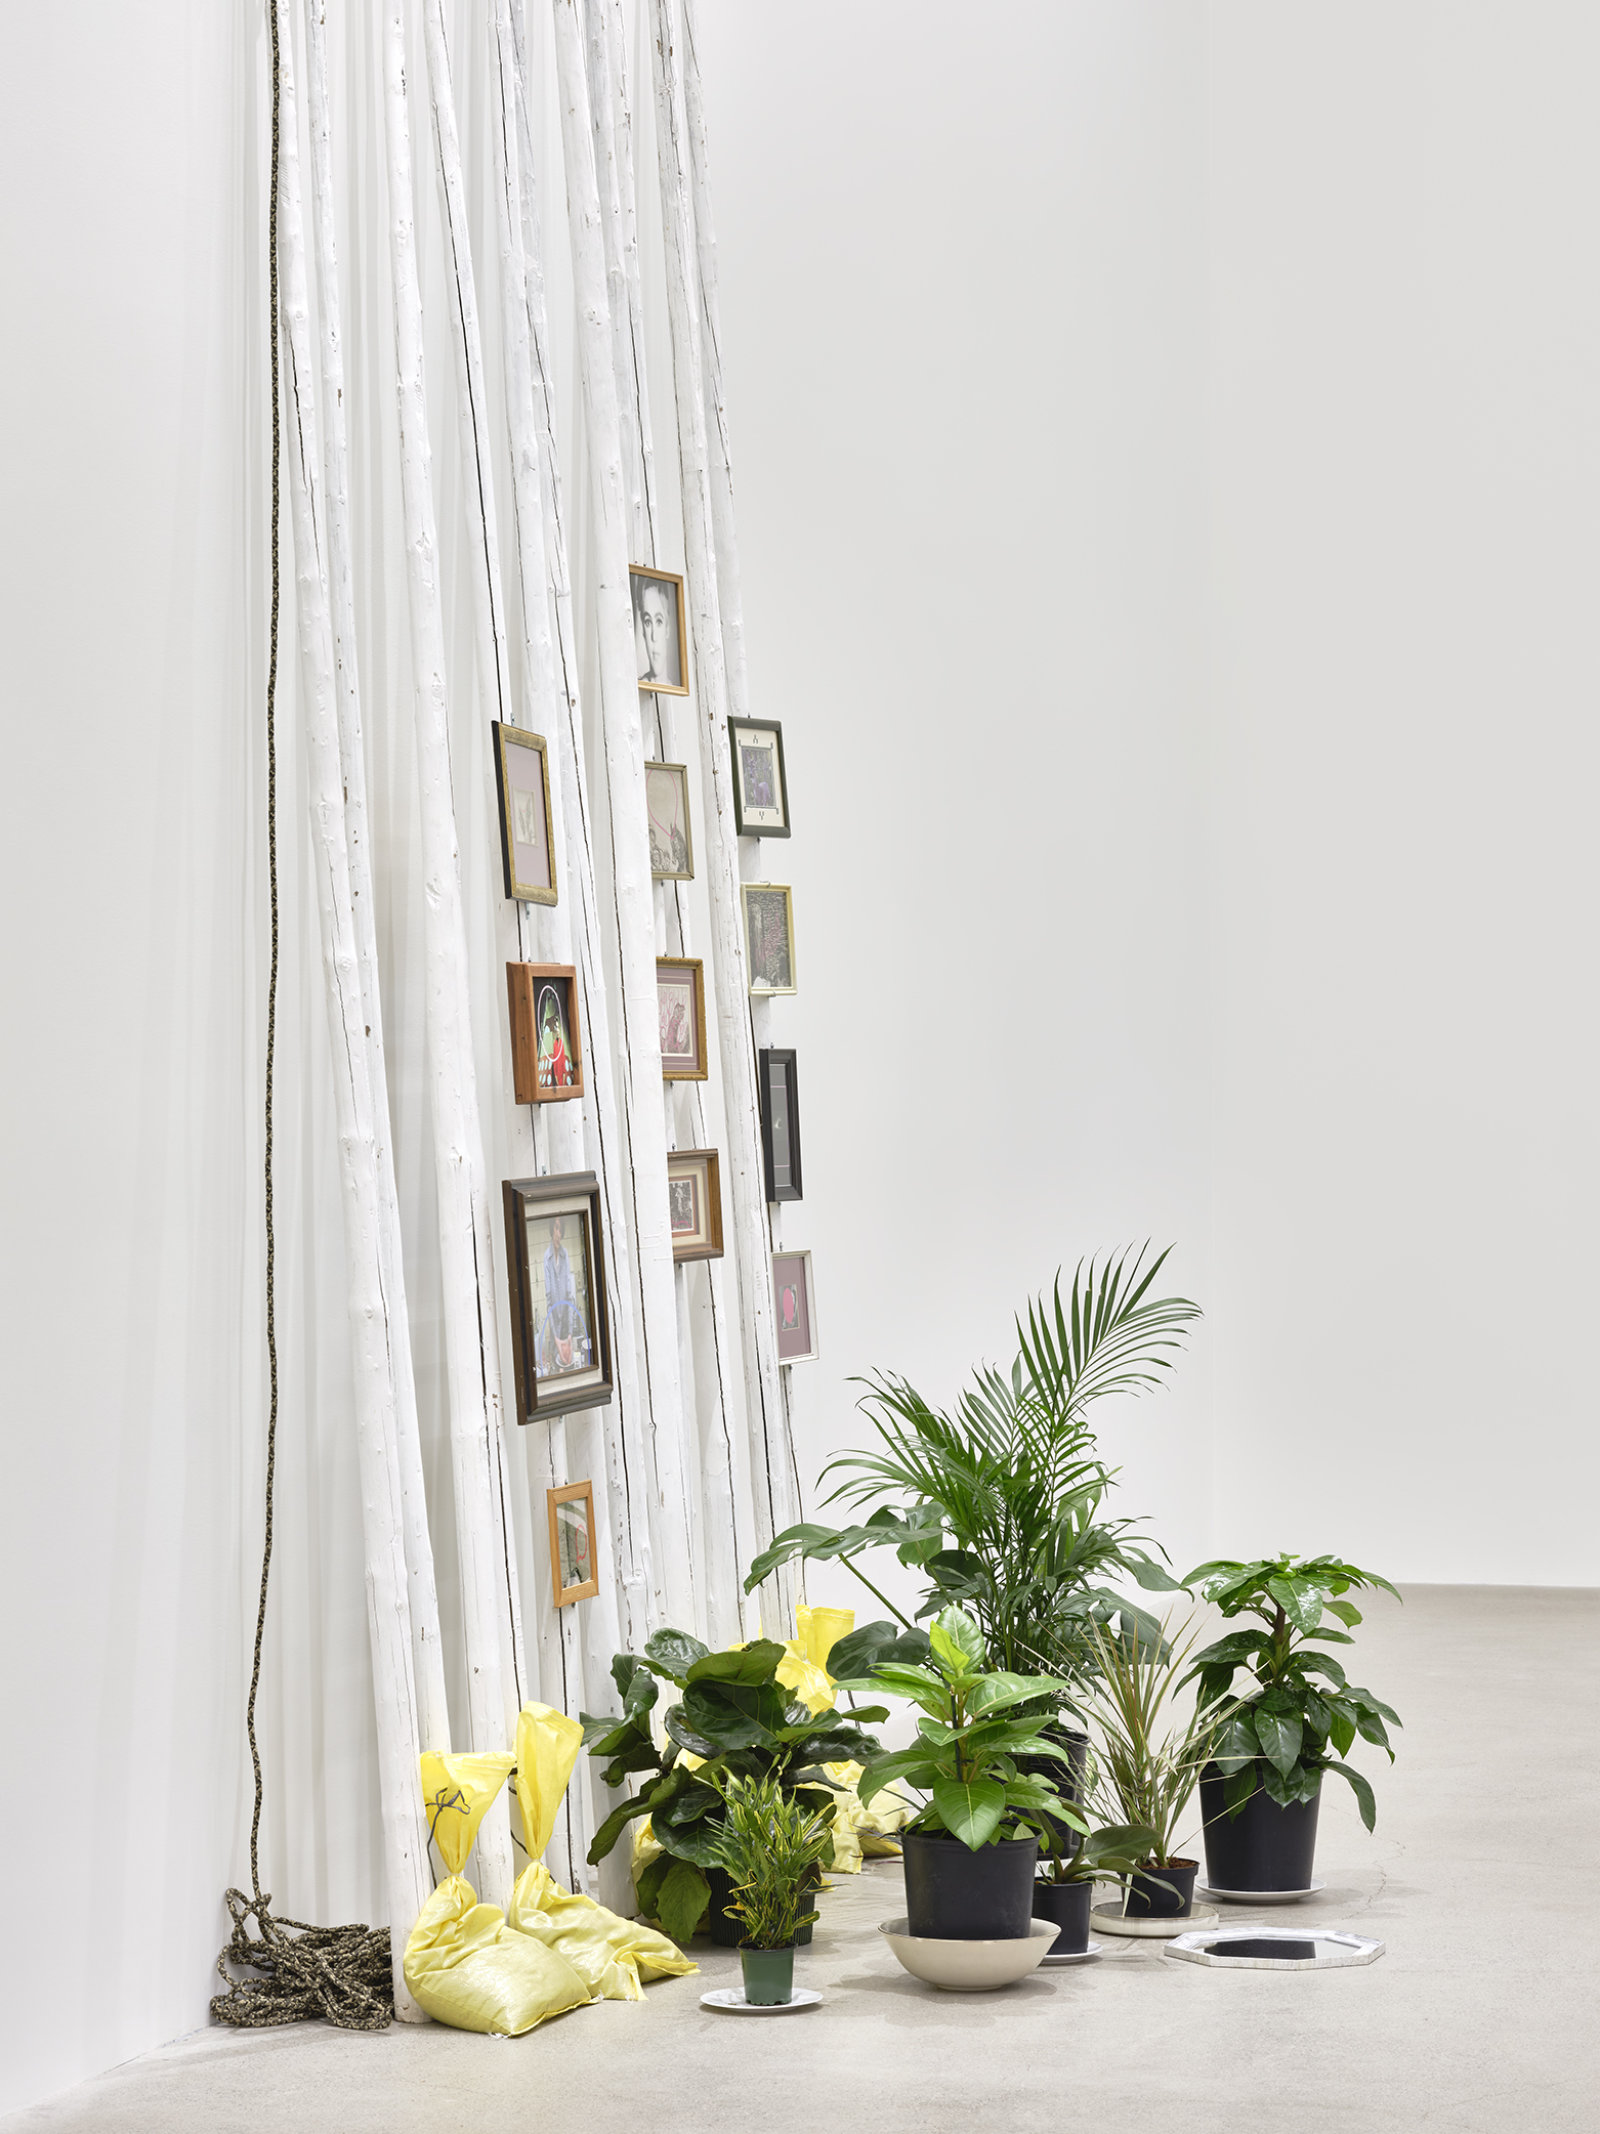 Duane Linklater, action at a distance (detail), 2020, teepee poles, paint, nylon rope, plants, plates, ceramics, sandbags, frames, 12 digital prints, mirror, 233 x 102 x 66 in. (592 x 259 x 168 cm) by Duane Linklater